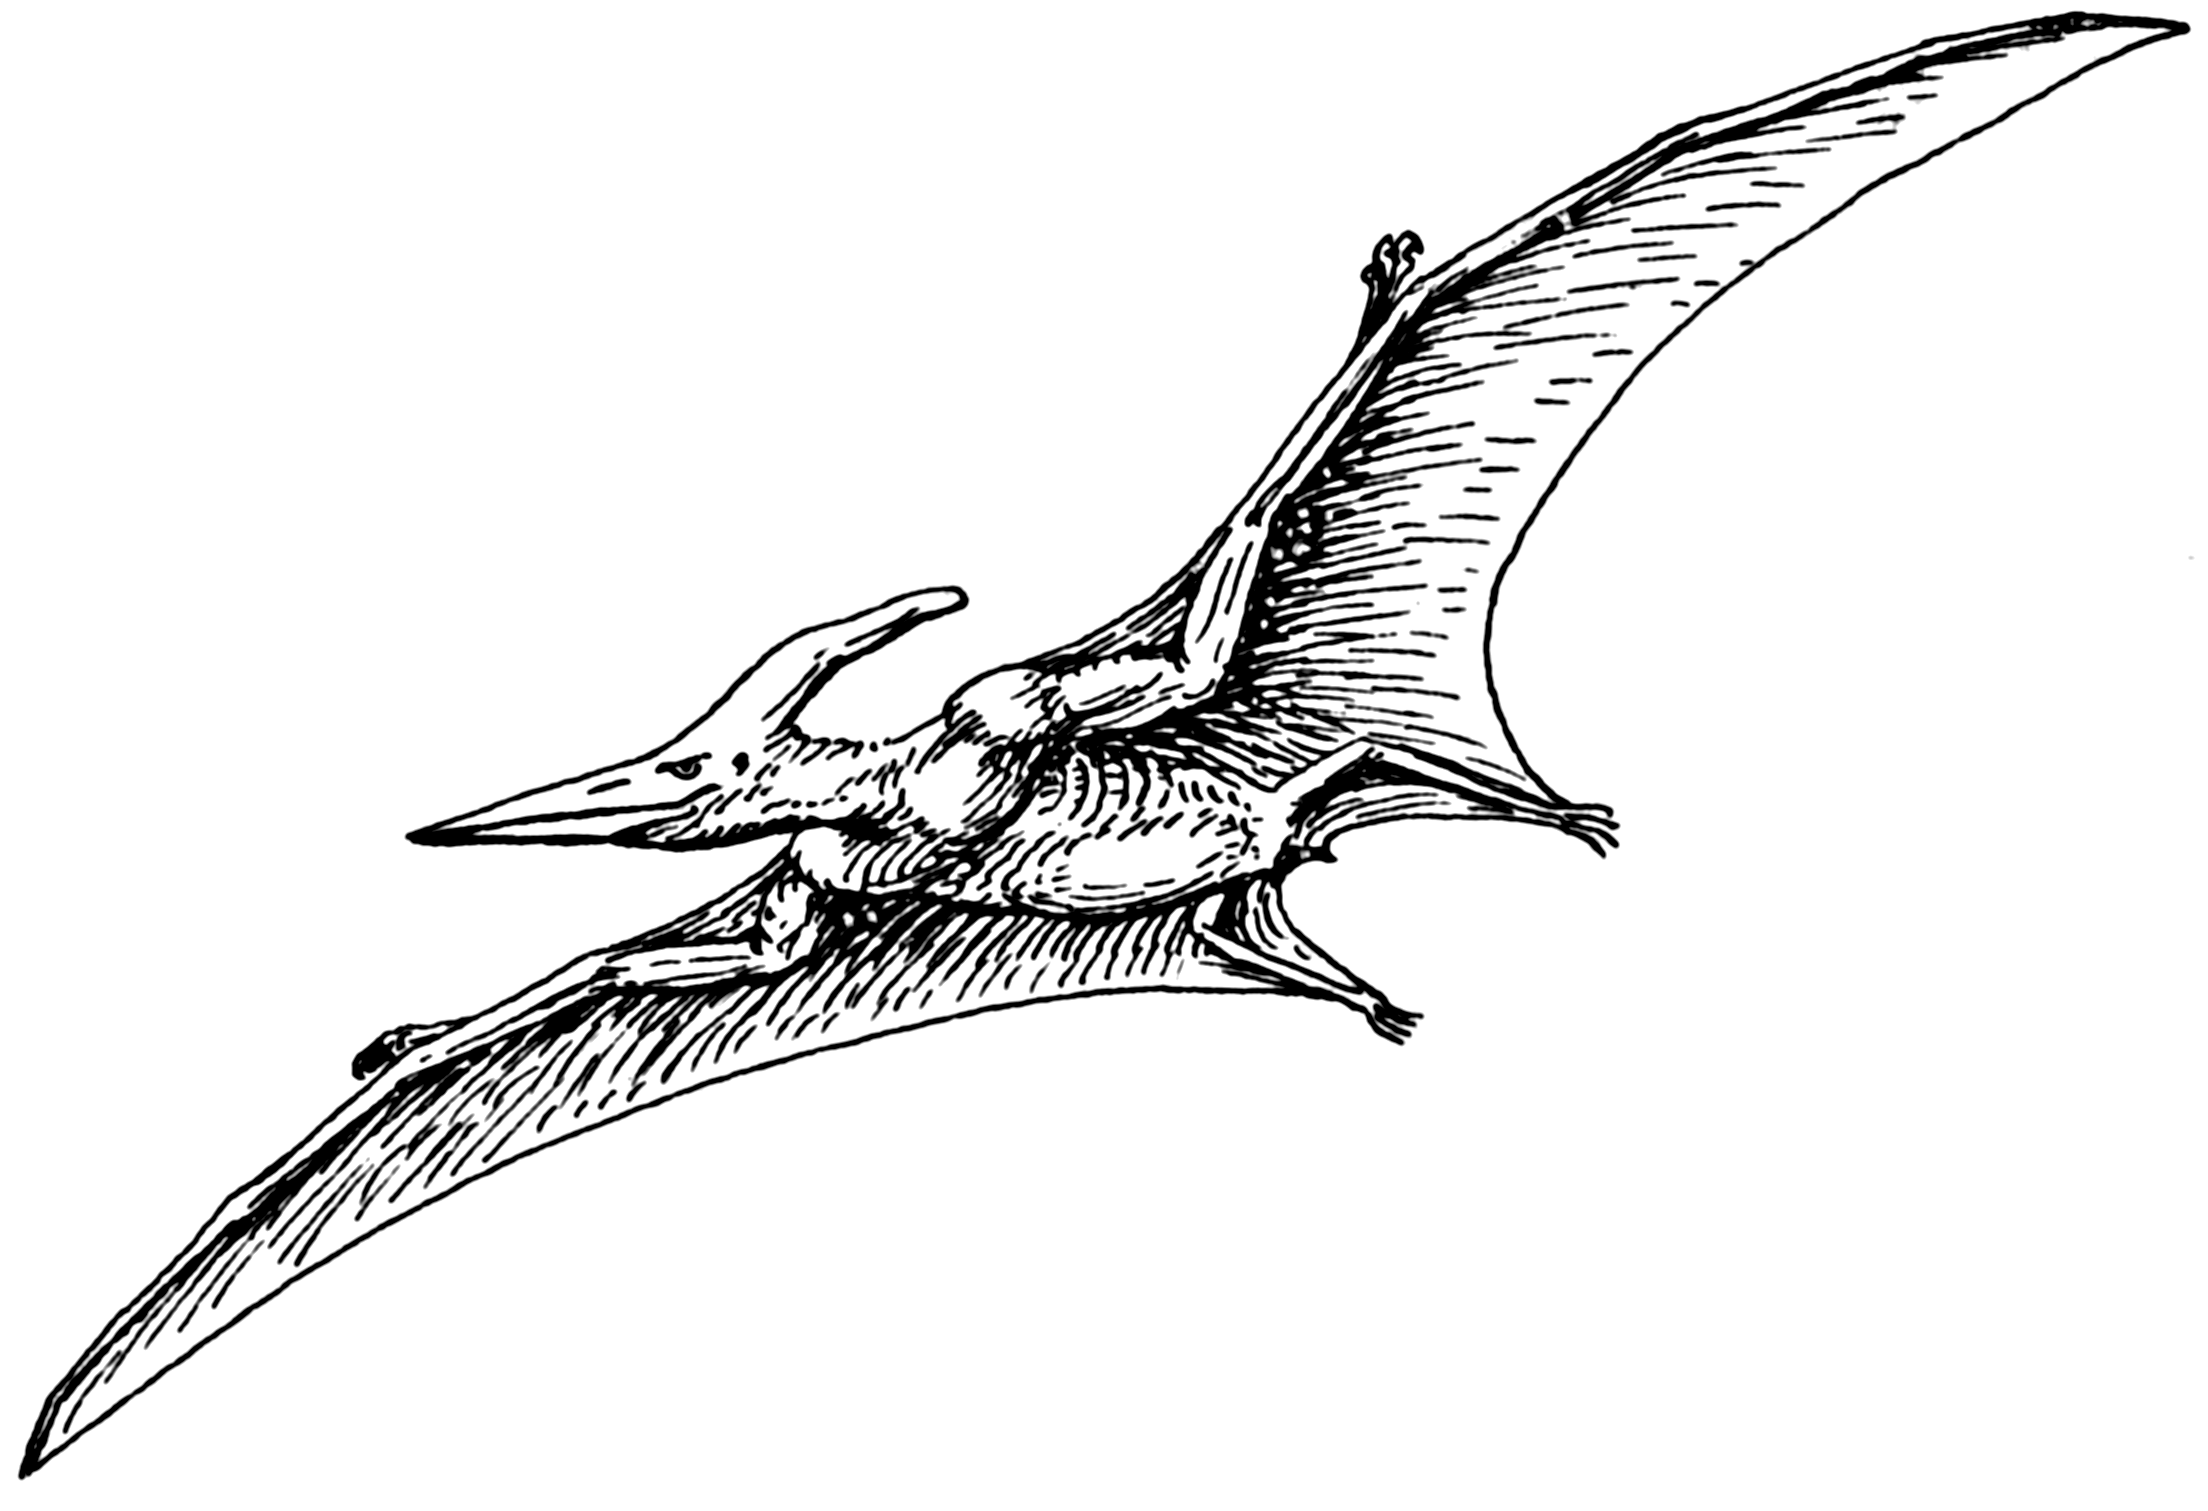 Adult Cute Pterodactyl Coloring Page Images beauty pterodactyl coloring page hicoloringpages images